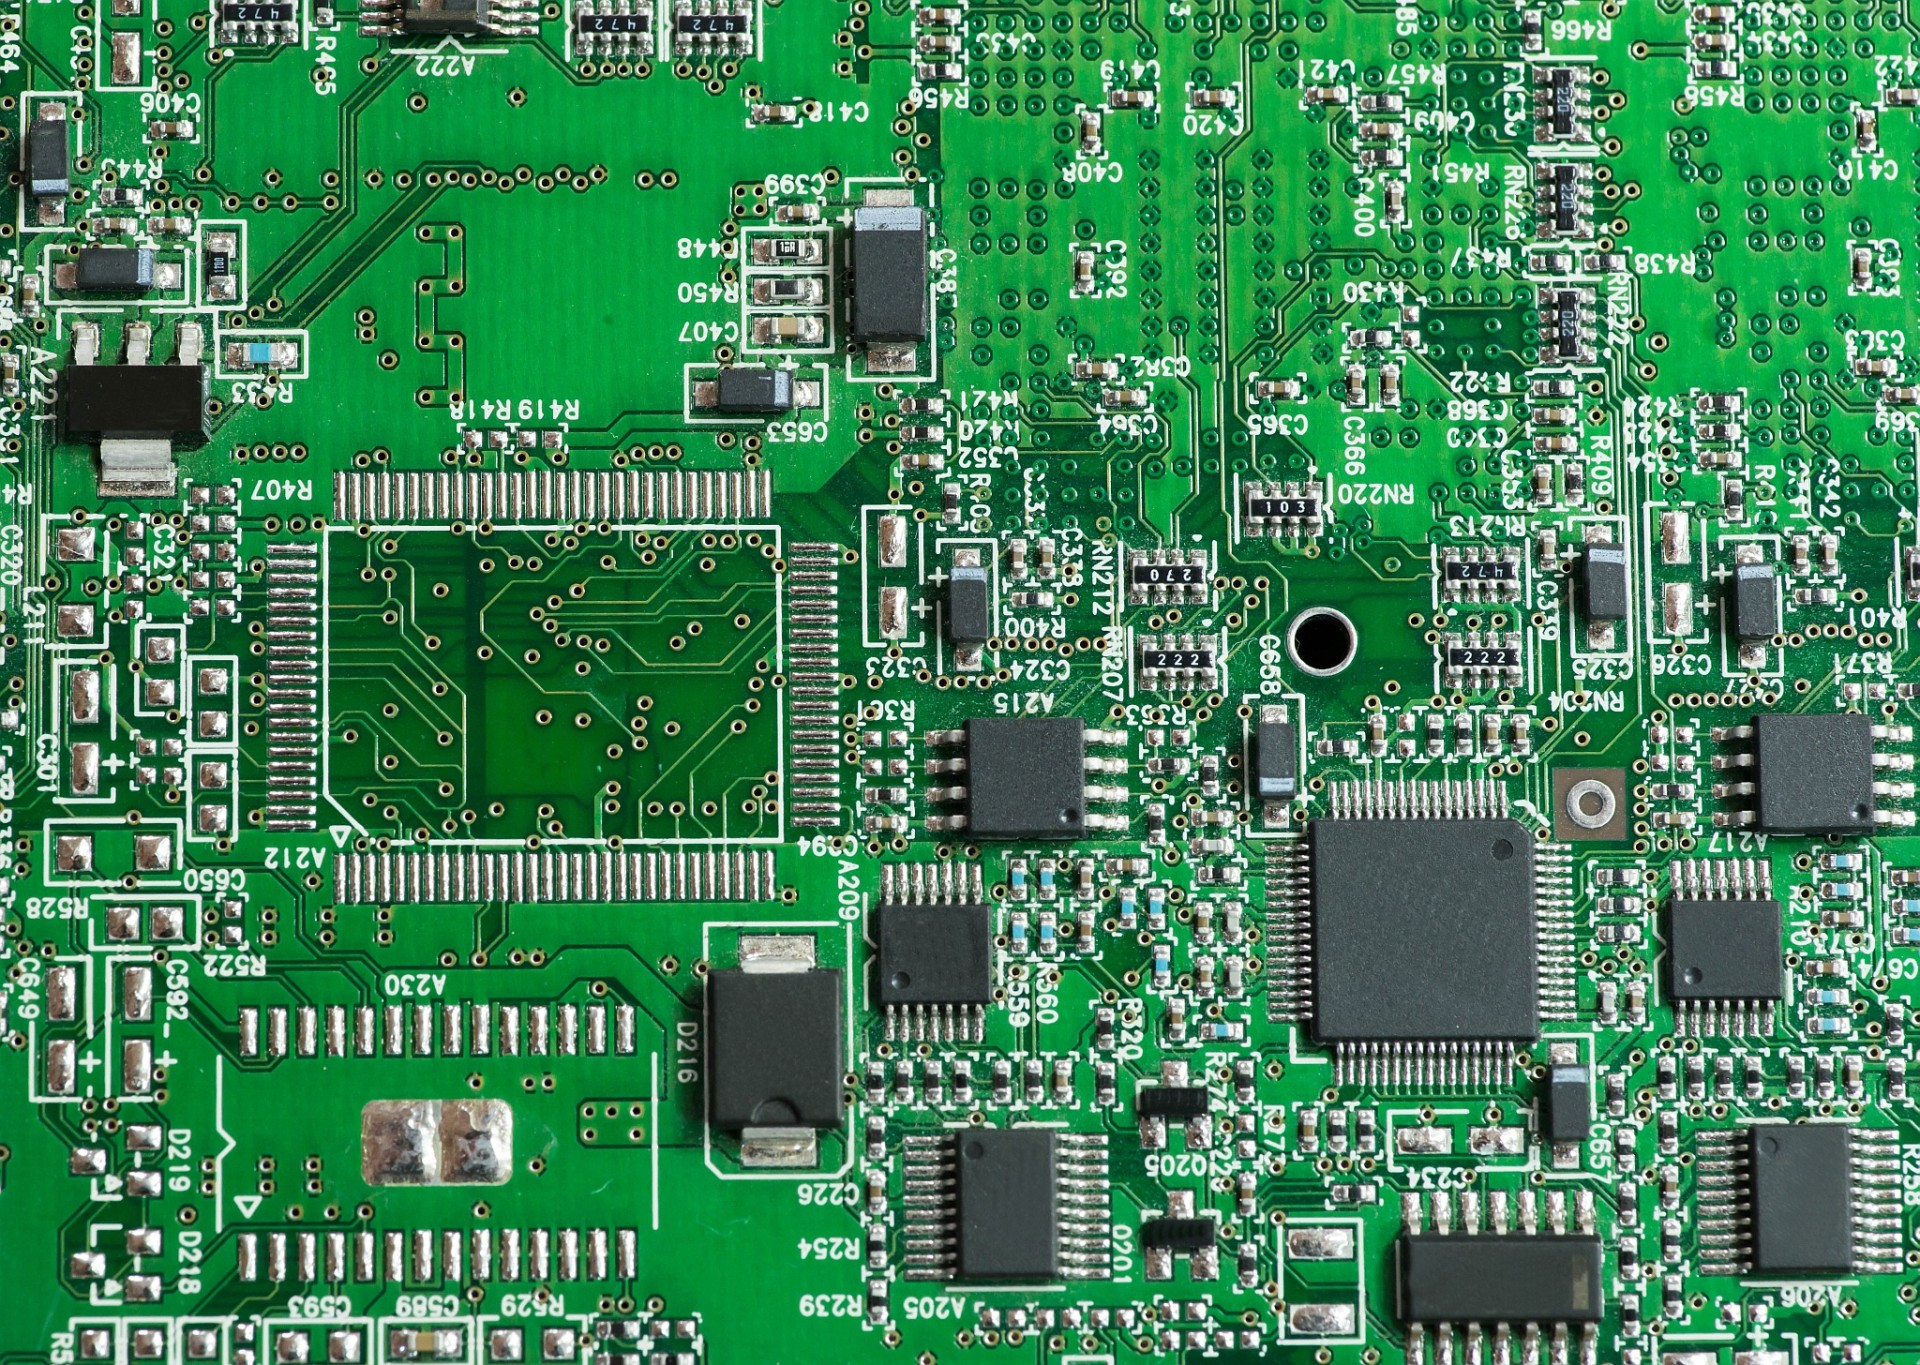 7 Fatal Mistakes To Avoid On Your Pcb Design Make The Circuit You Showed In Blog Doesn39t Work Capacitor Is